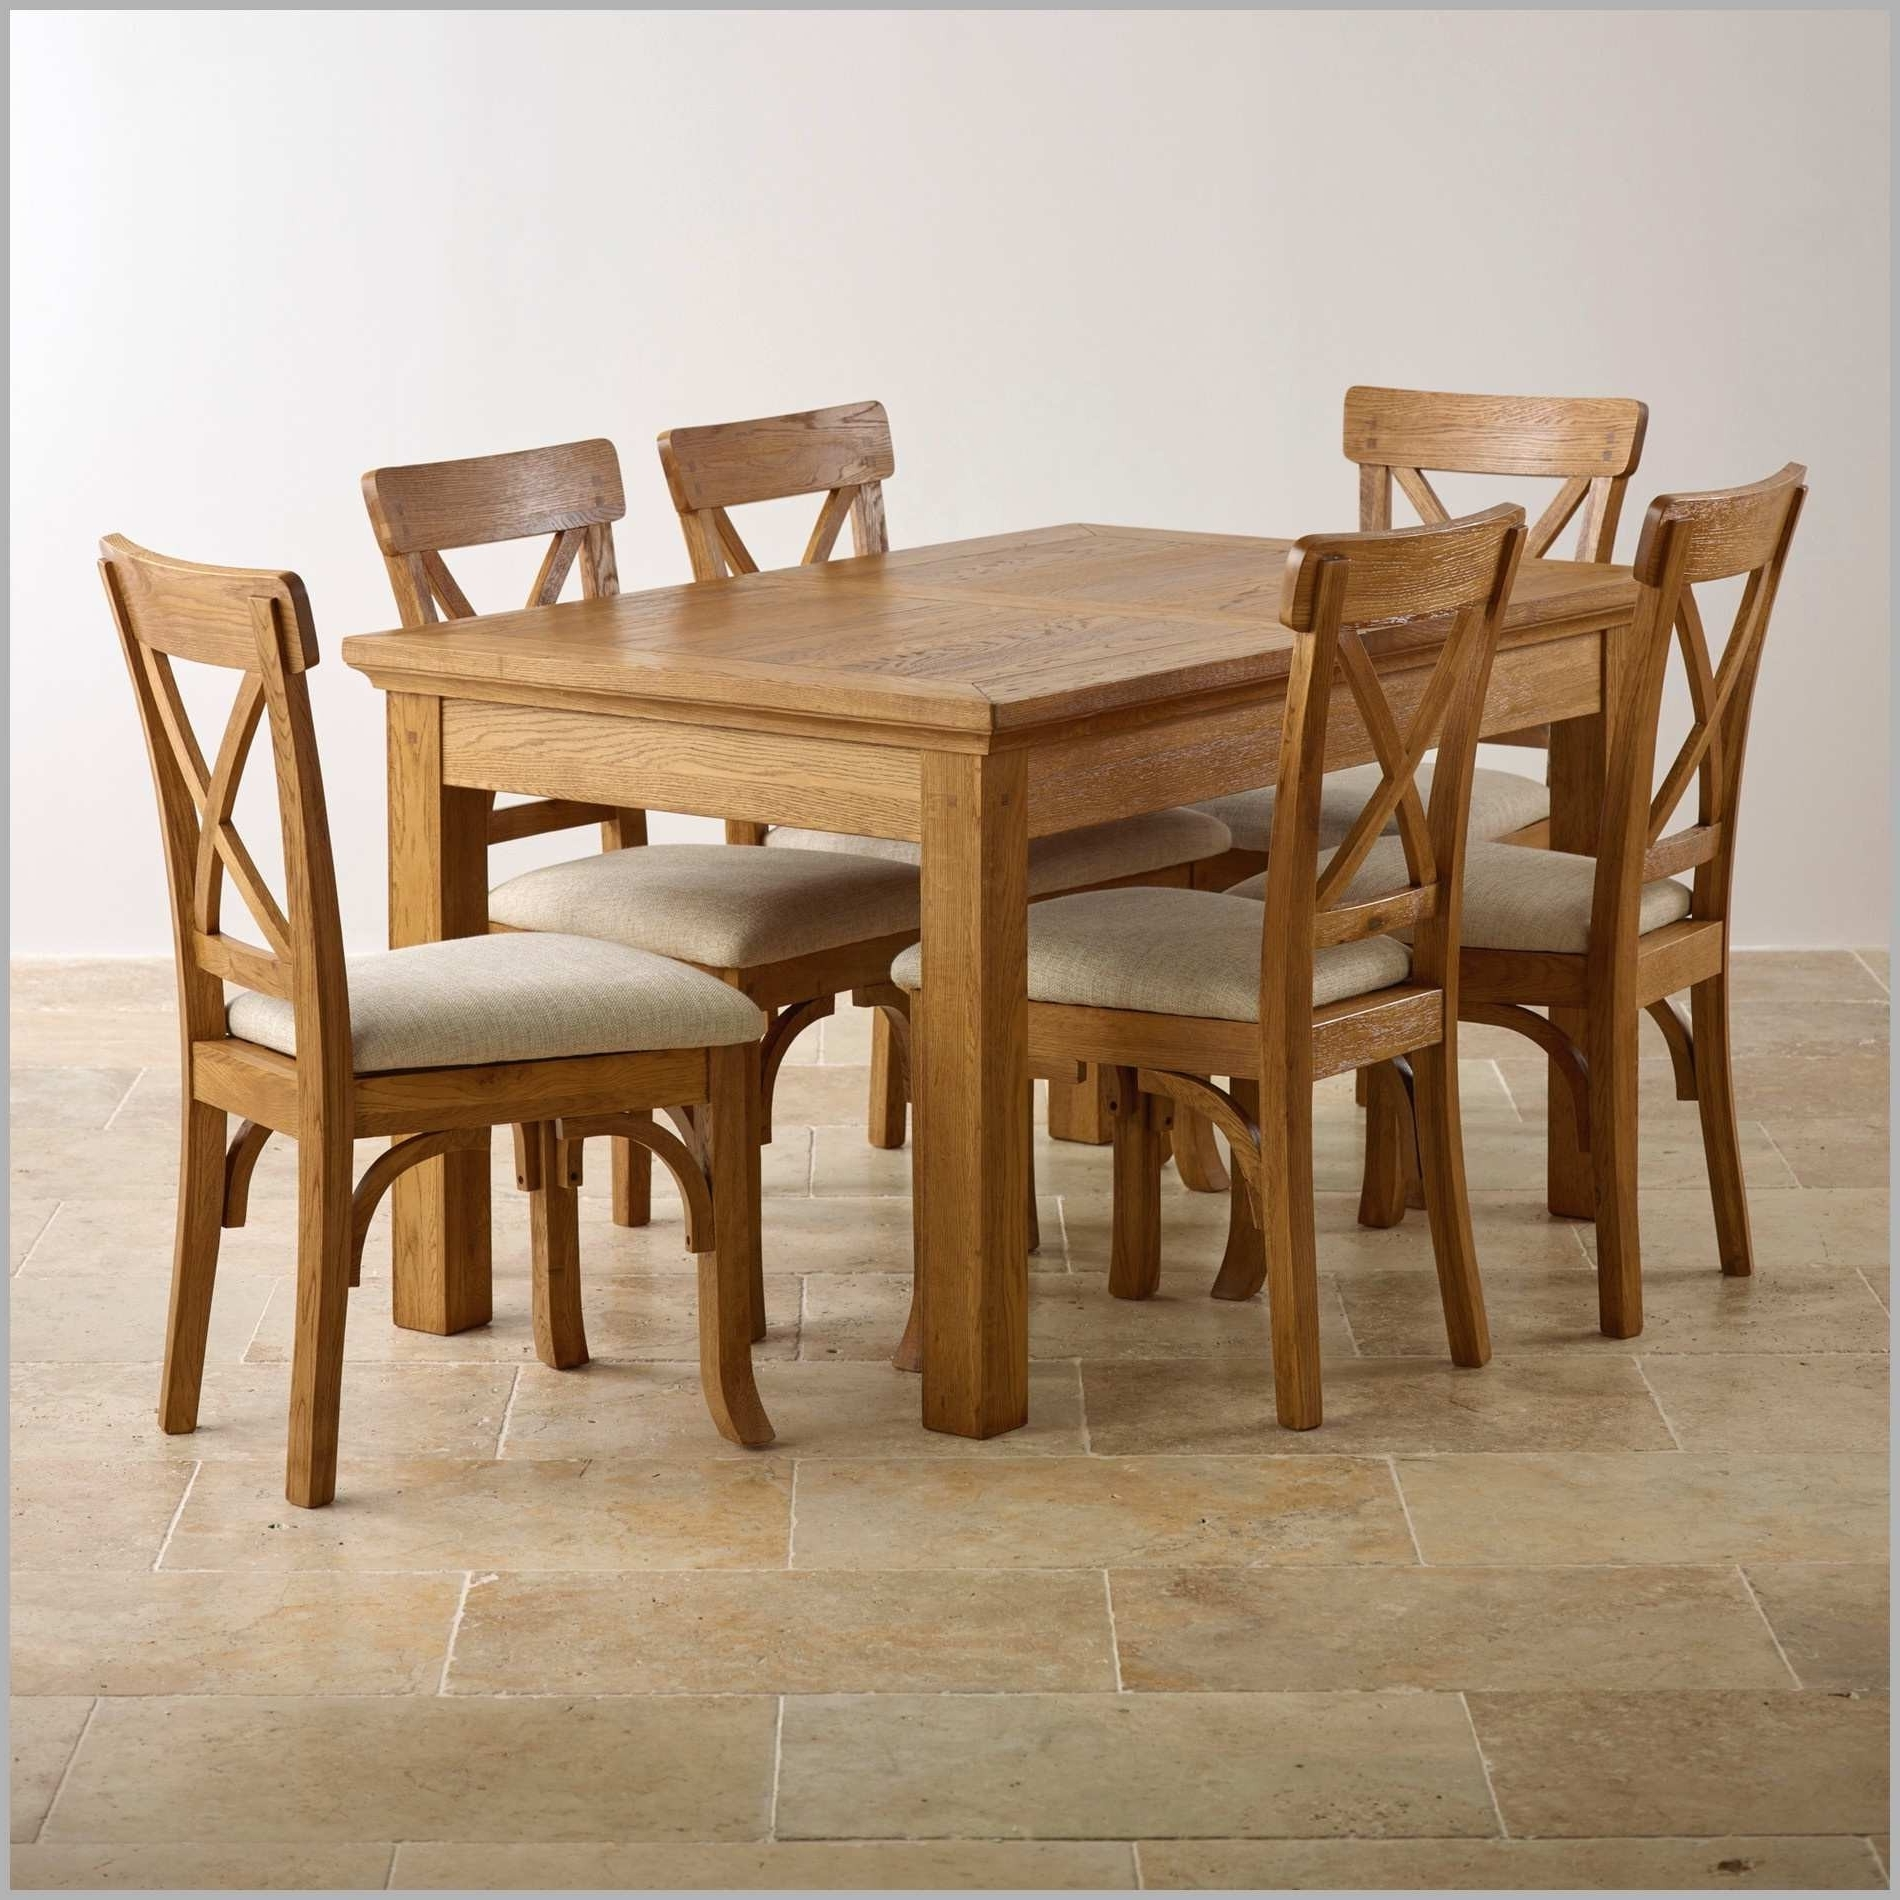 Oak 6 Seater Dining Tables Regarding Trendy The 24 Elegant Solid Oak Round Dining Table 6 Chairs (View 19 of 25)